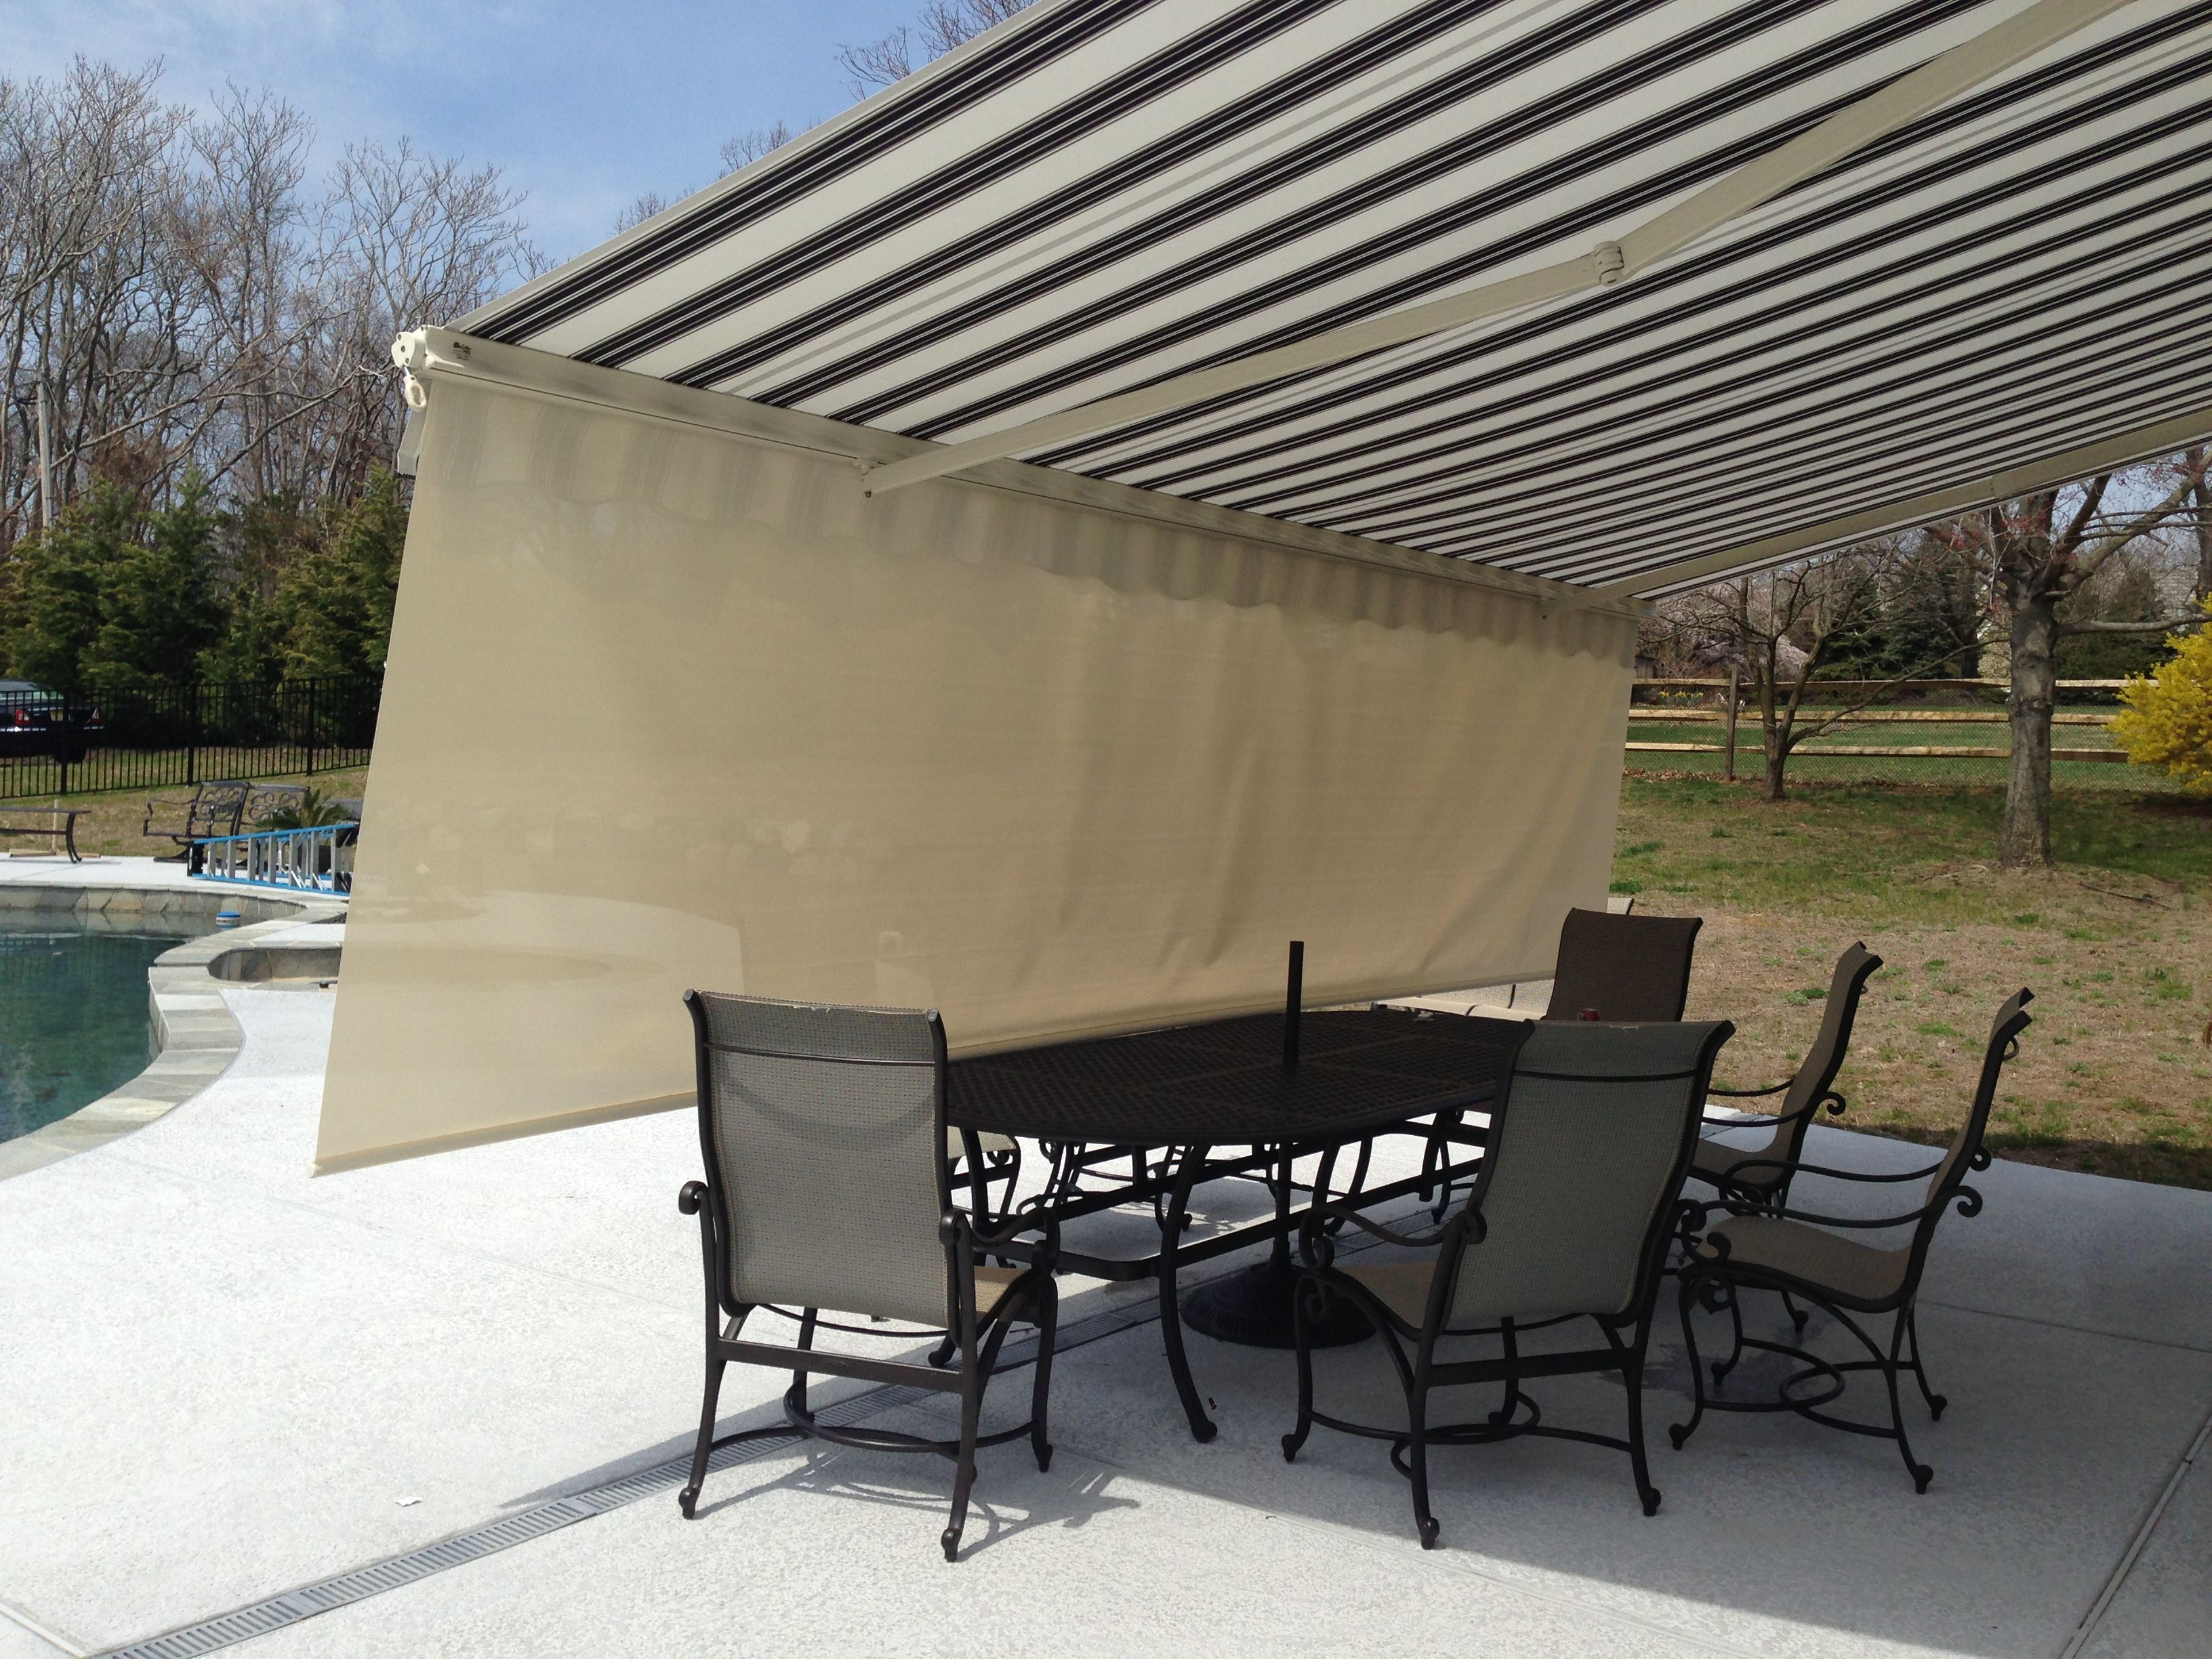 bergen patio nj retractable airspatiocoverscreenroom essex awning awnings county enclosures